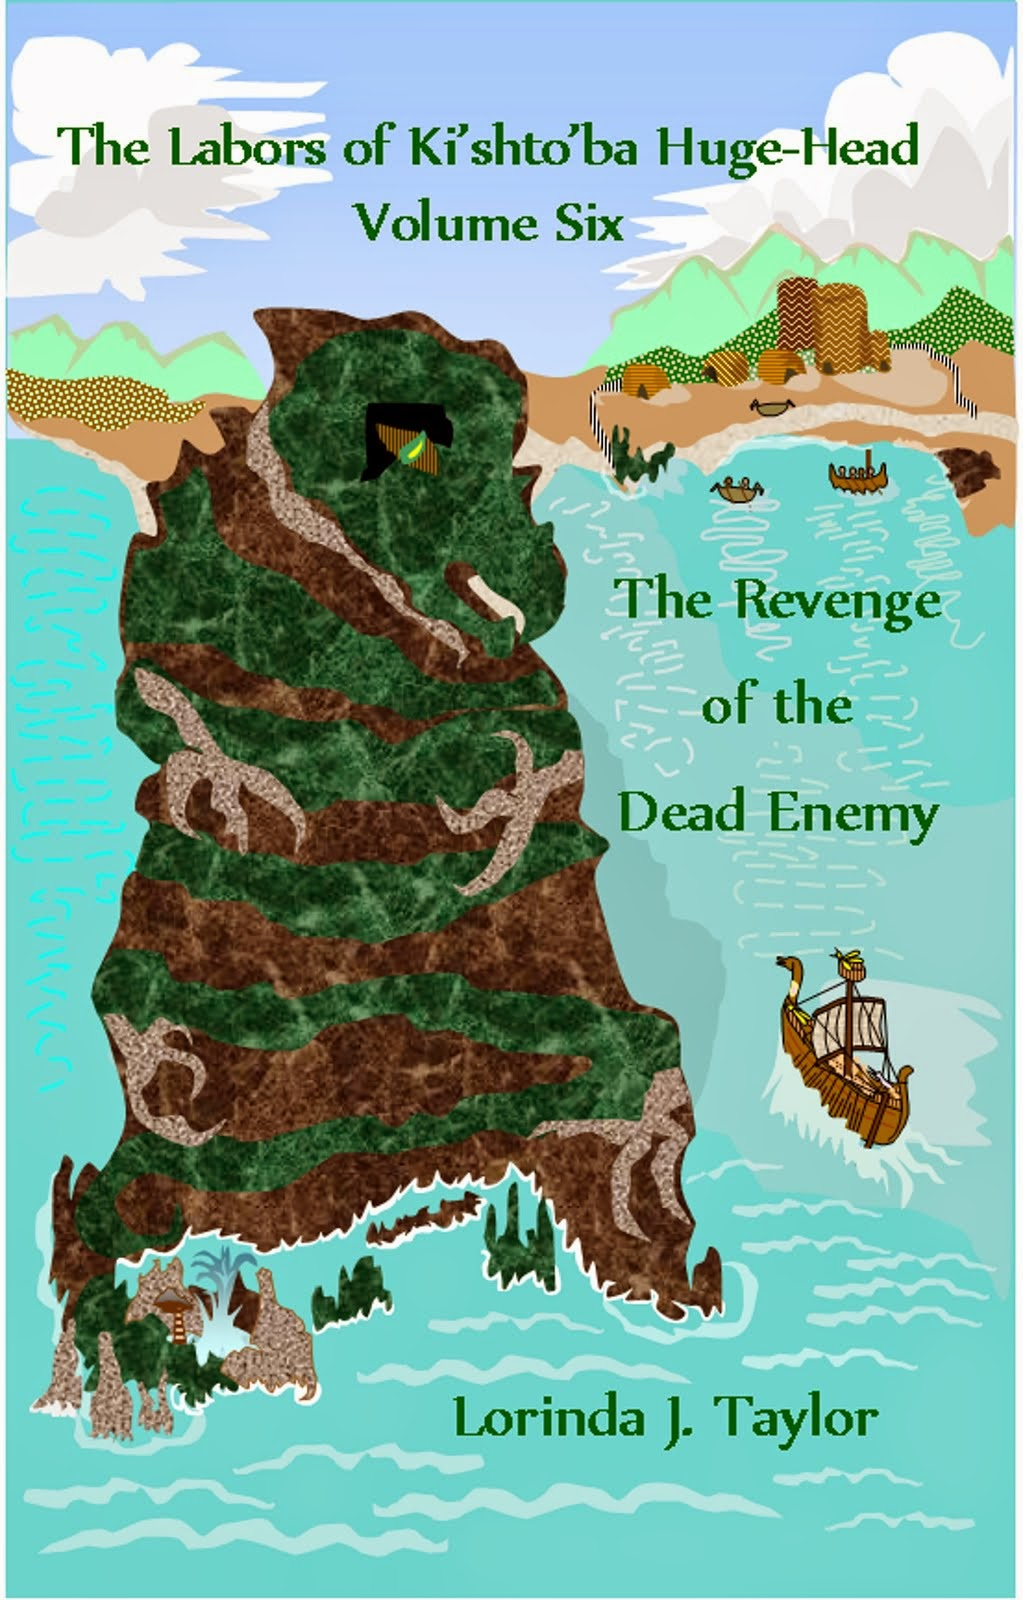 THE REVENGE OF THE DEAD ENEMY, v.6 of THE LABORS OF KI'SHTO'BA HUGE-HEAD